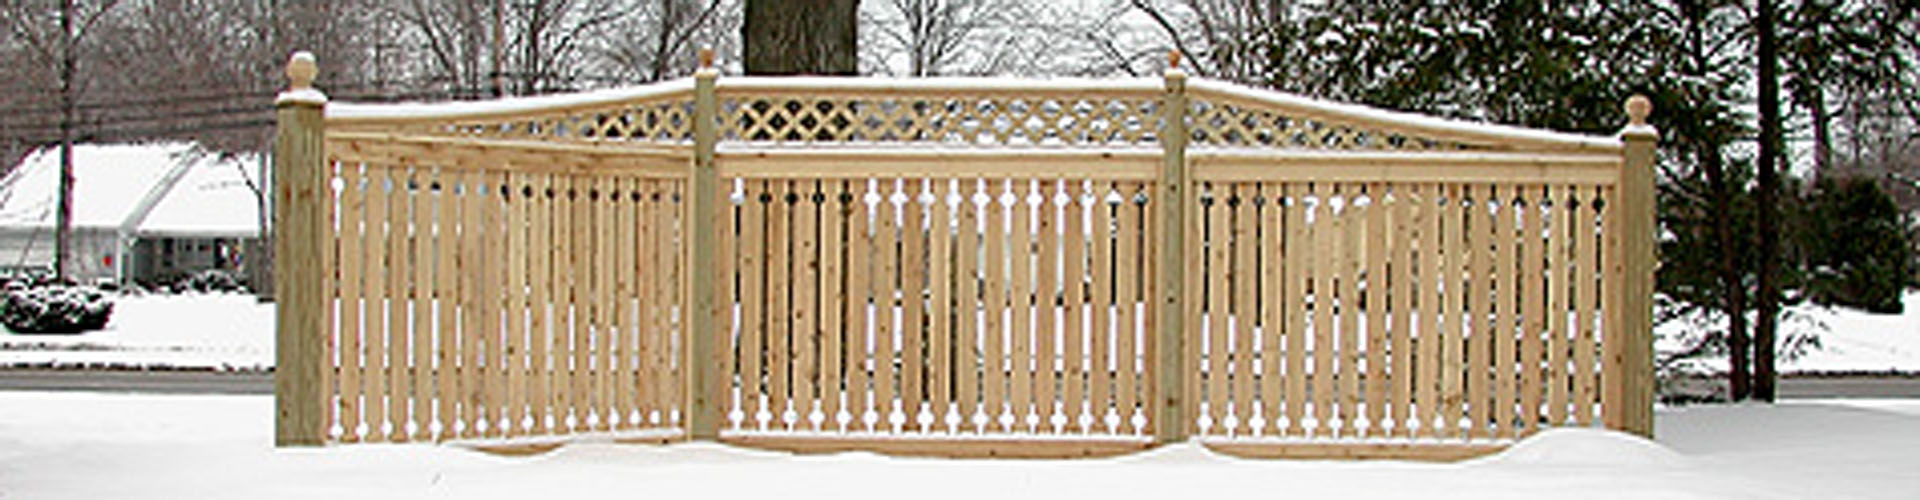 Good Neighbor Cedar Wooden Fences By Elyria Fence